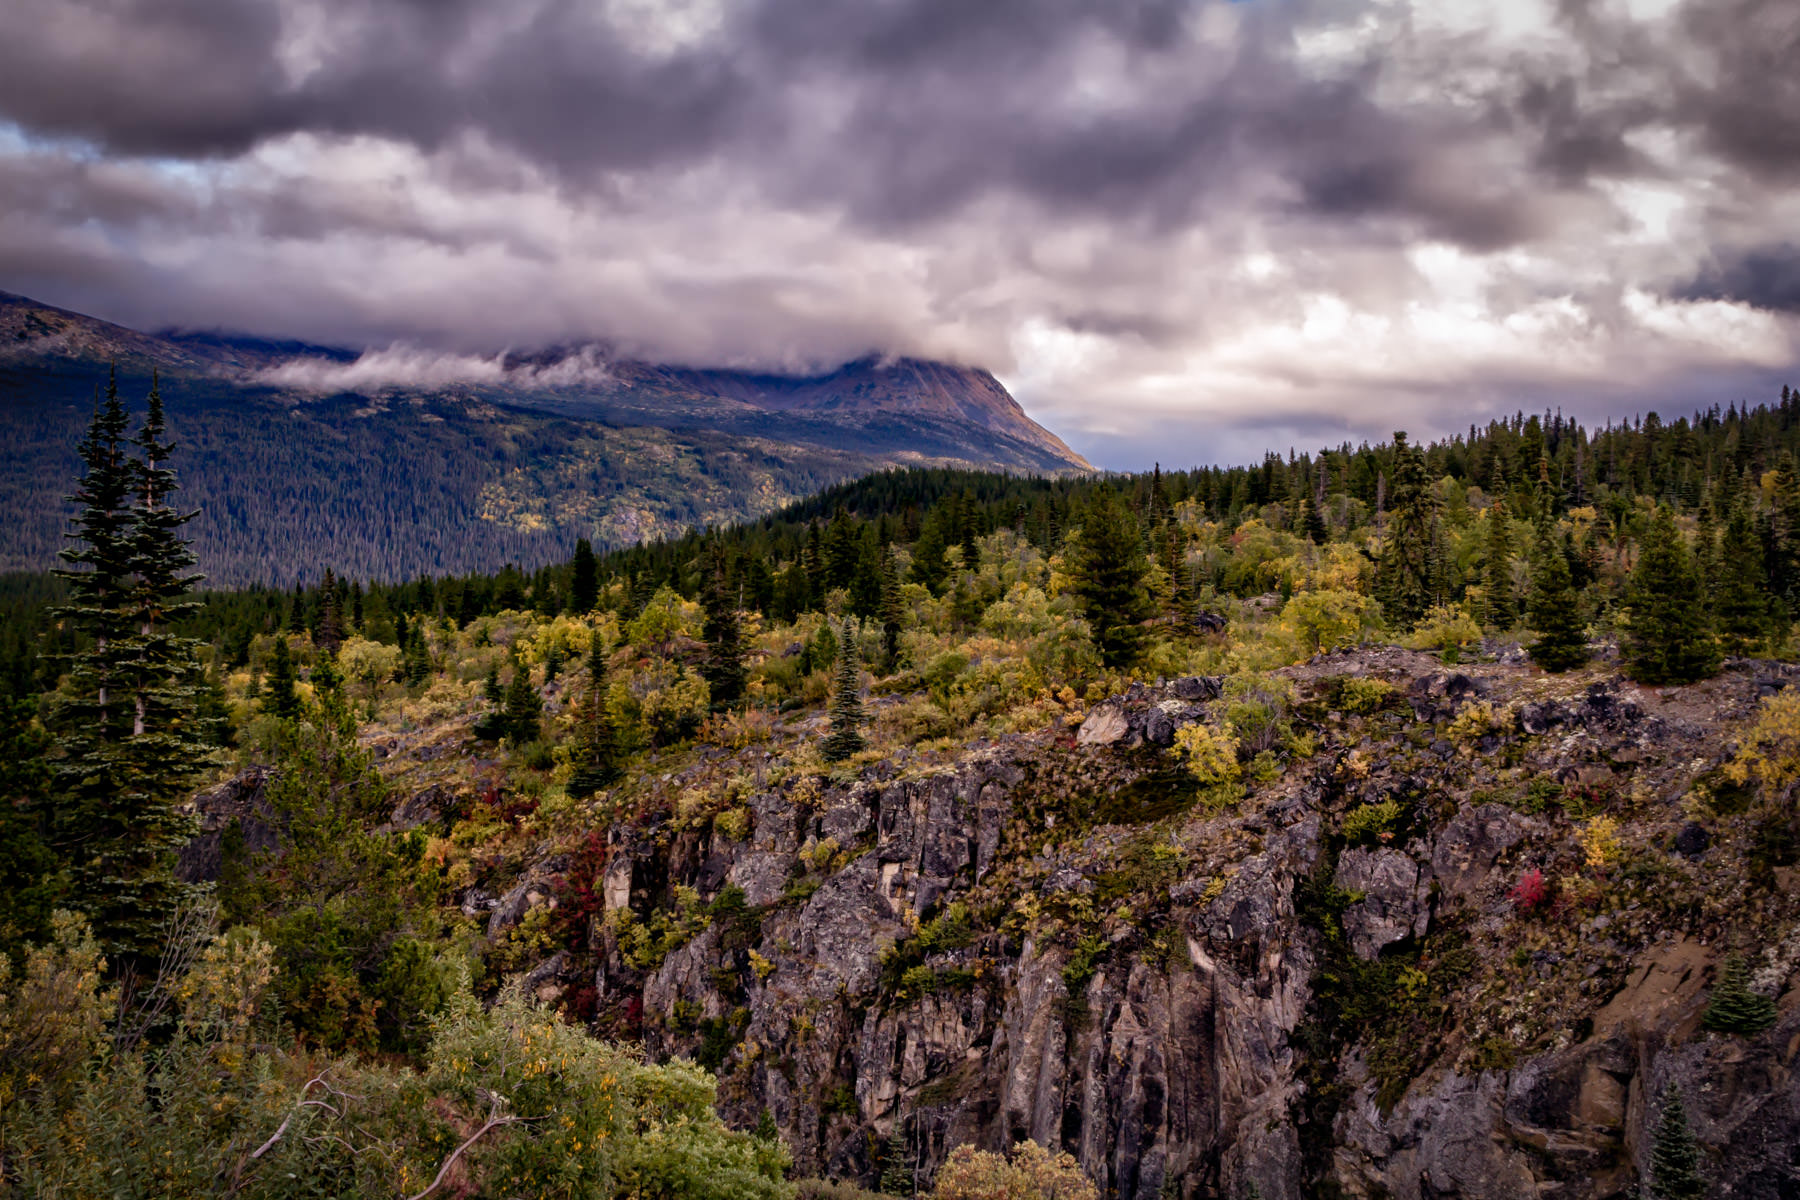 Dark clouds form over the forested mountains of British Columbia's Stikine Region.